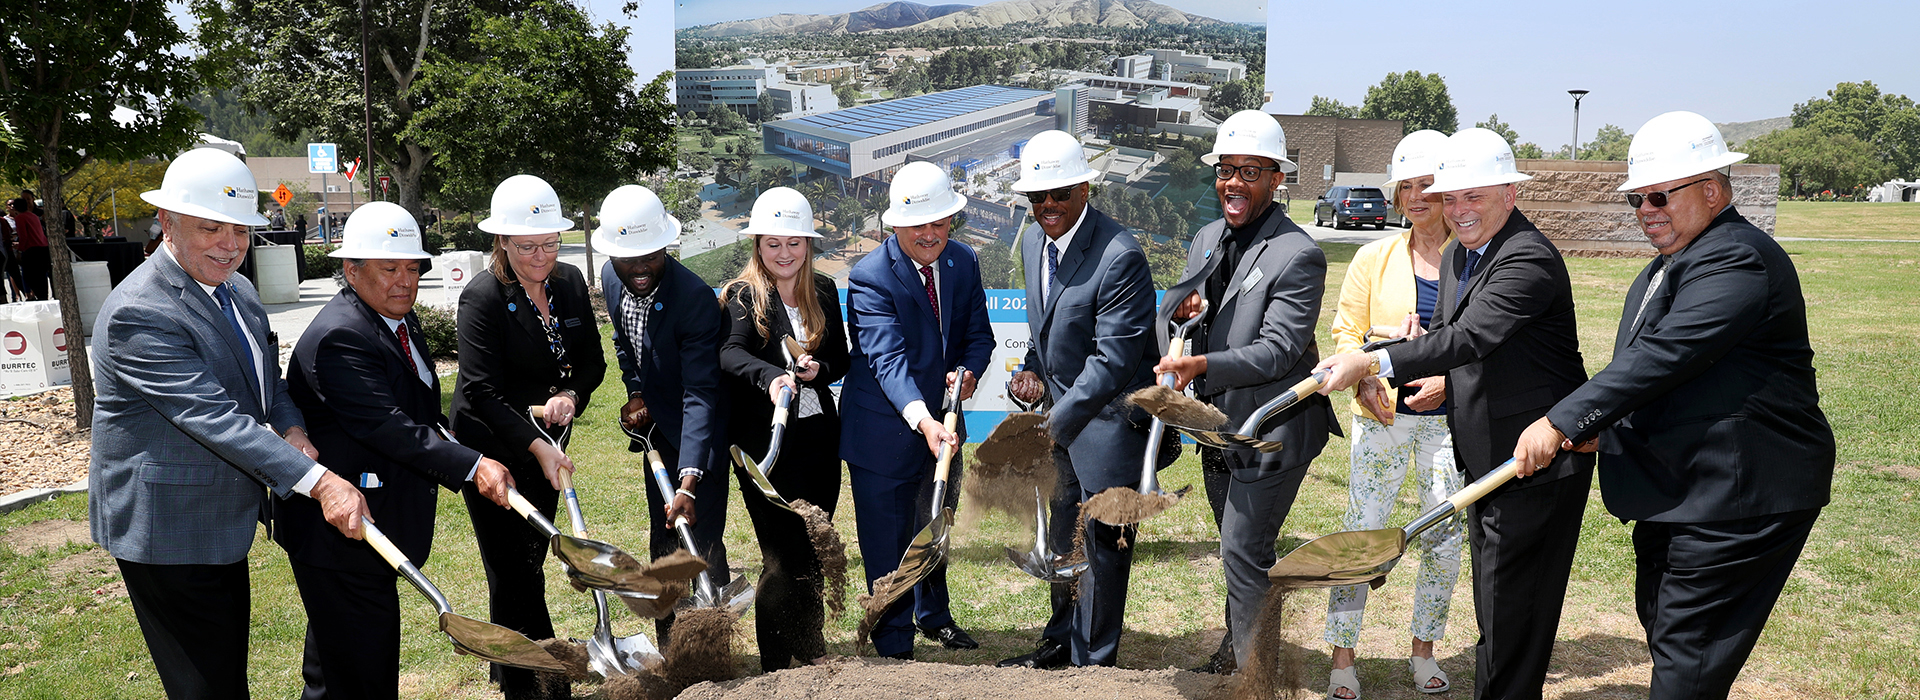 CSUSB formally breaks ground for Santos Manuel Student Union expansion